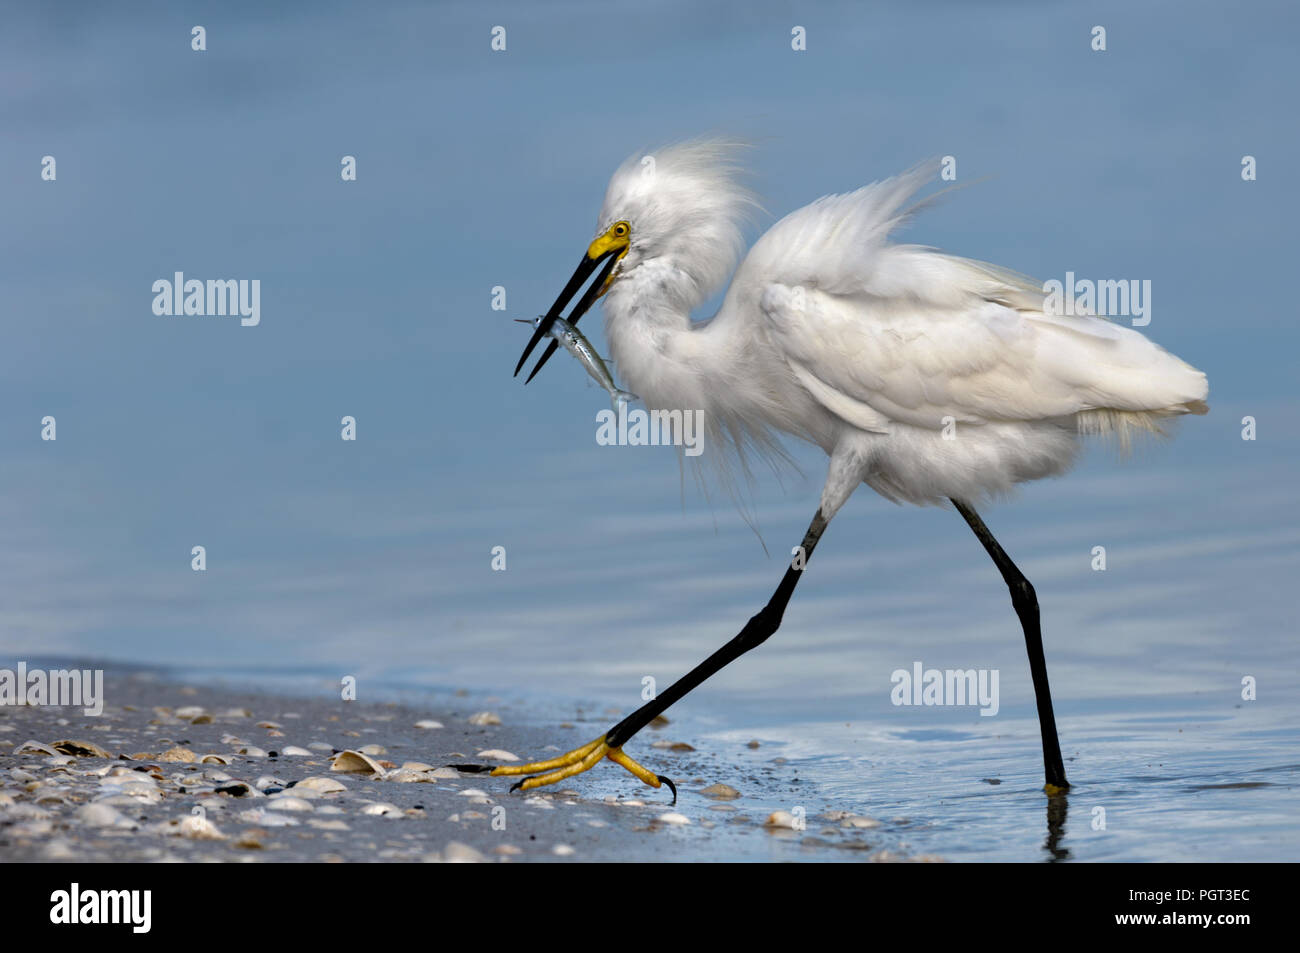 A snowy egret with fluffy feathered plumage wades out of the